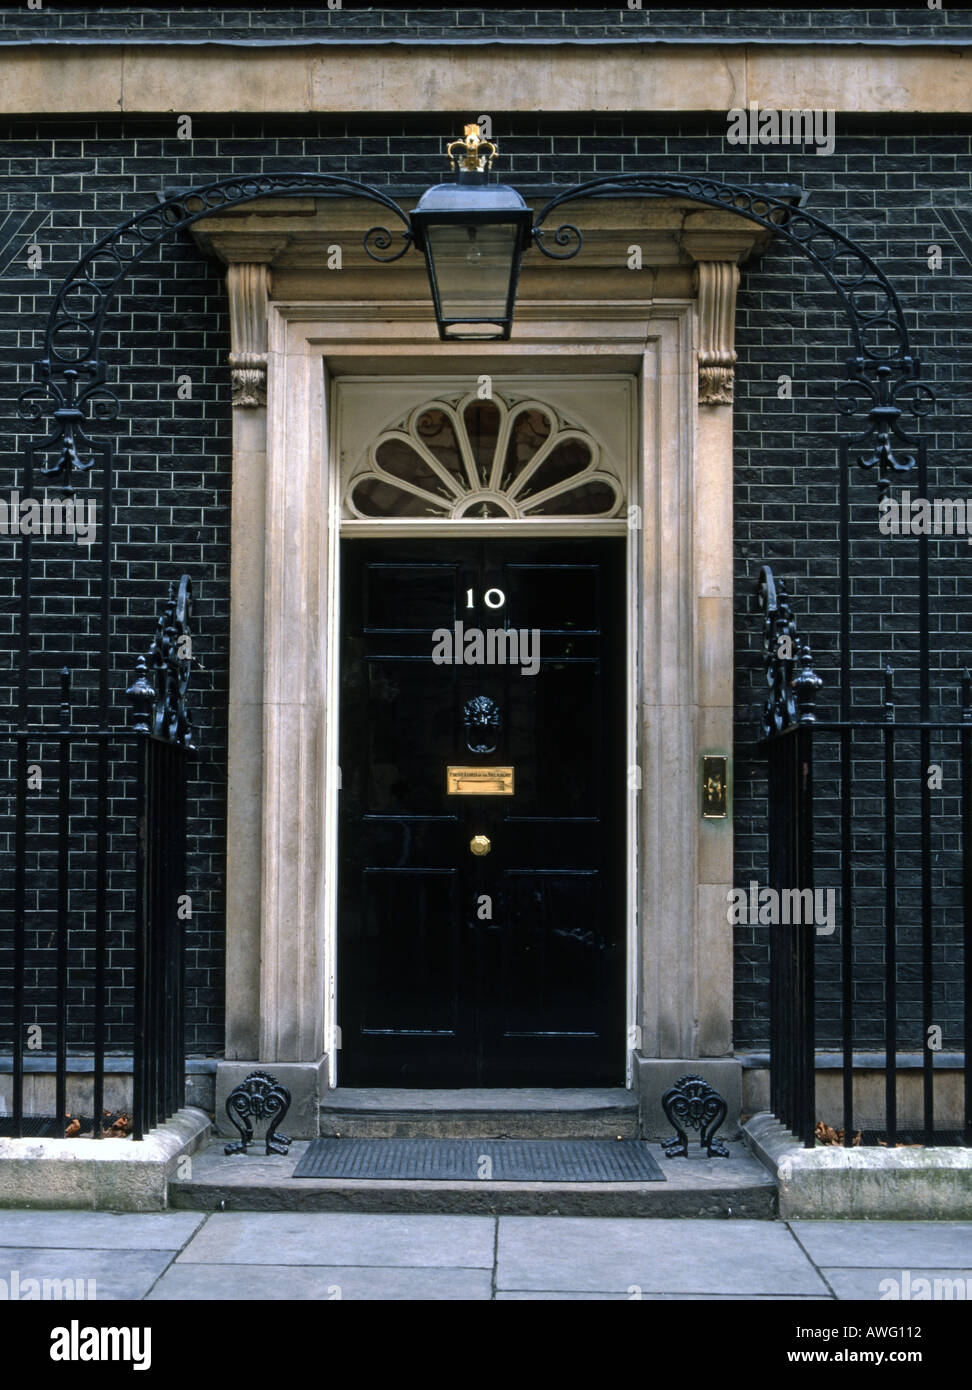 Britain's most famous front door 10 downing street. Ten Downing St is the London home of the prime minister of the United Kingdom. Famous front door. - Stock Image